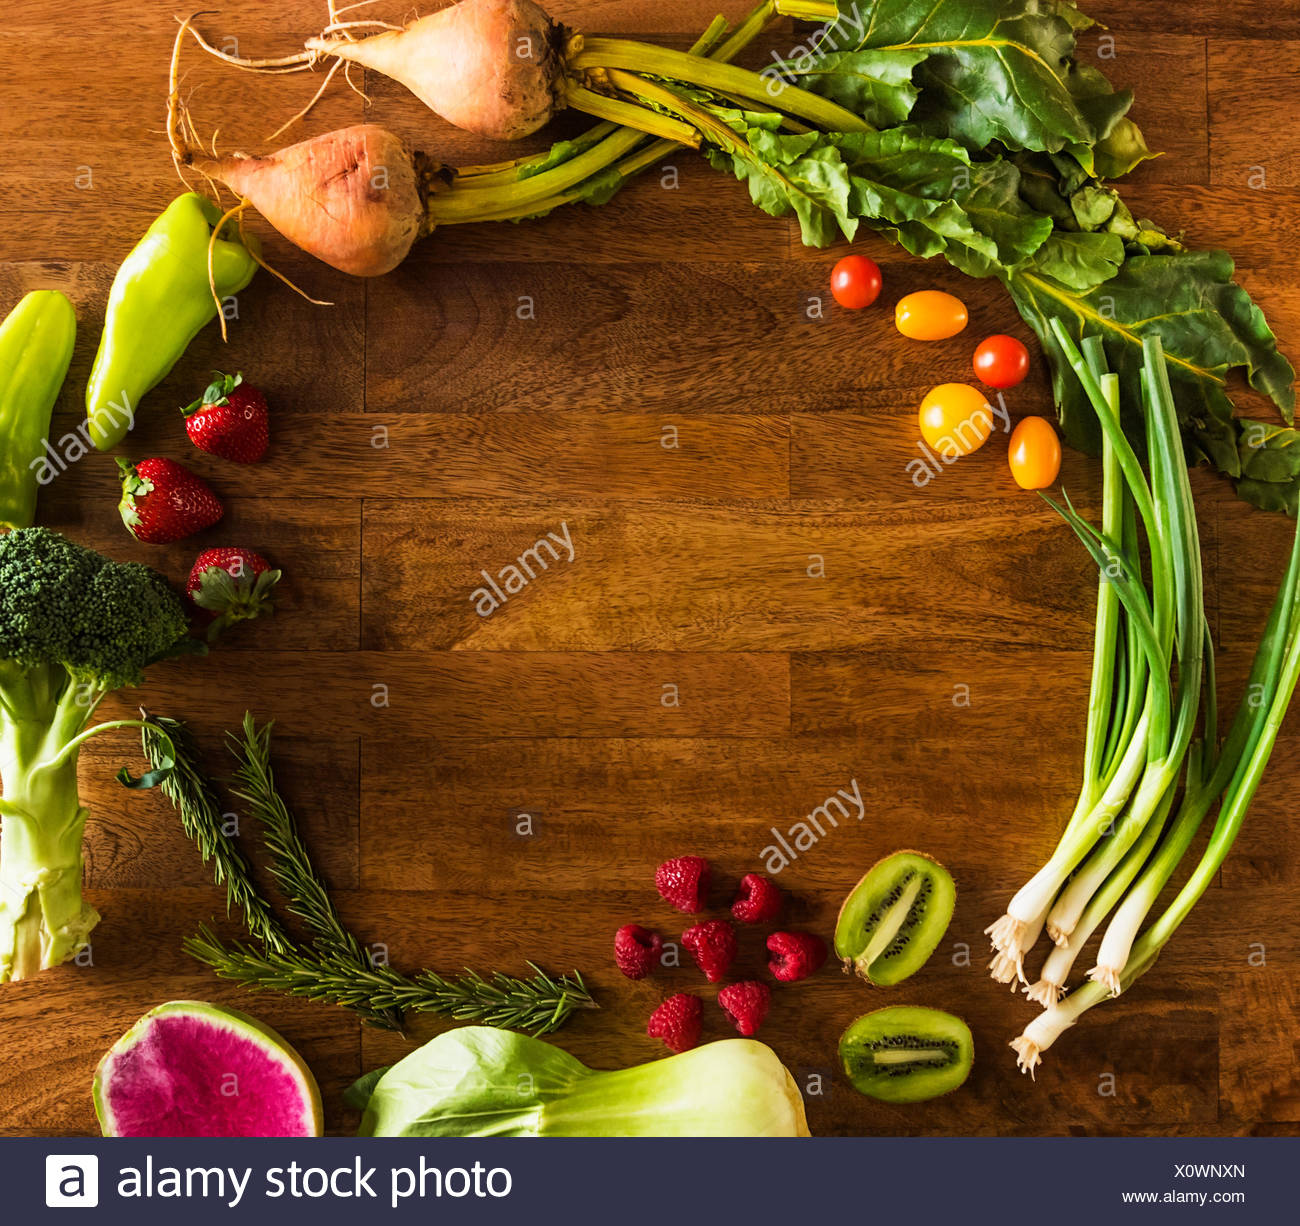 Fruit, vegetables and herbs - Stock Image